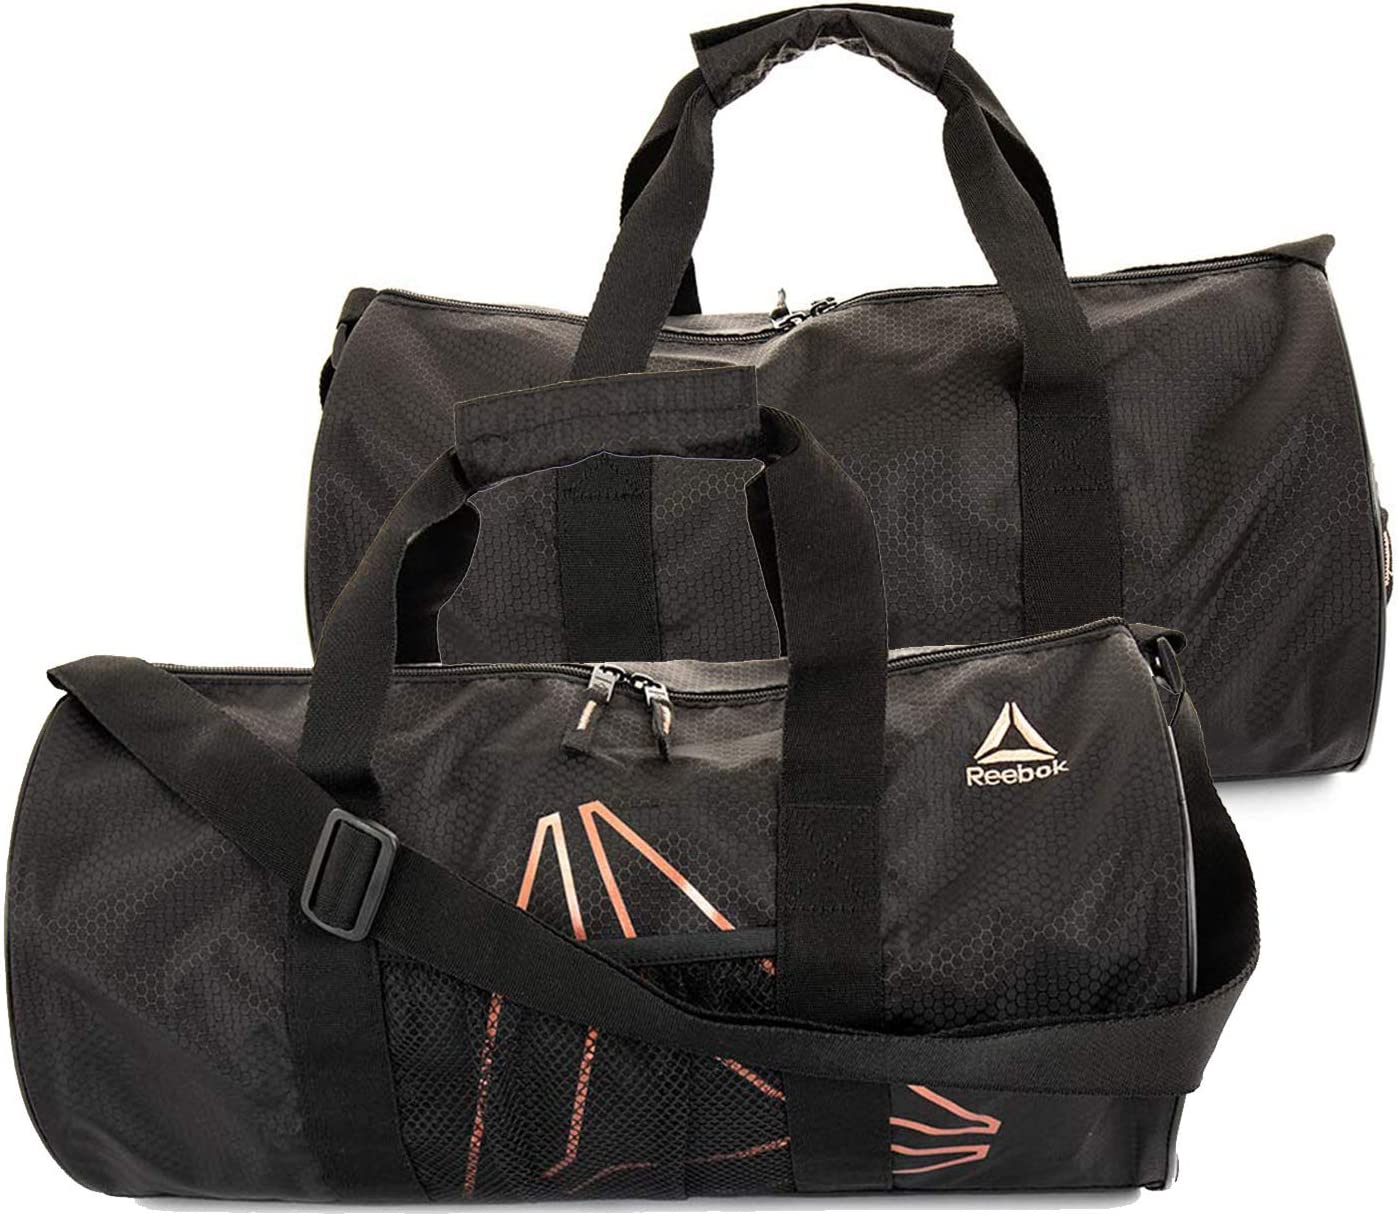 Heritage Navy or Cobalt Gym Sports Duffel Bag Details about  /Reebok PLYO Small Duffle Bag